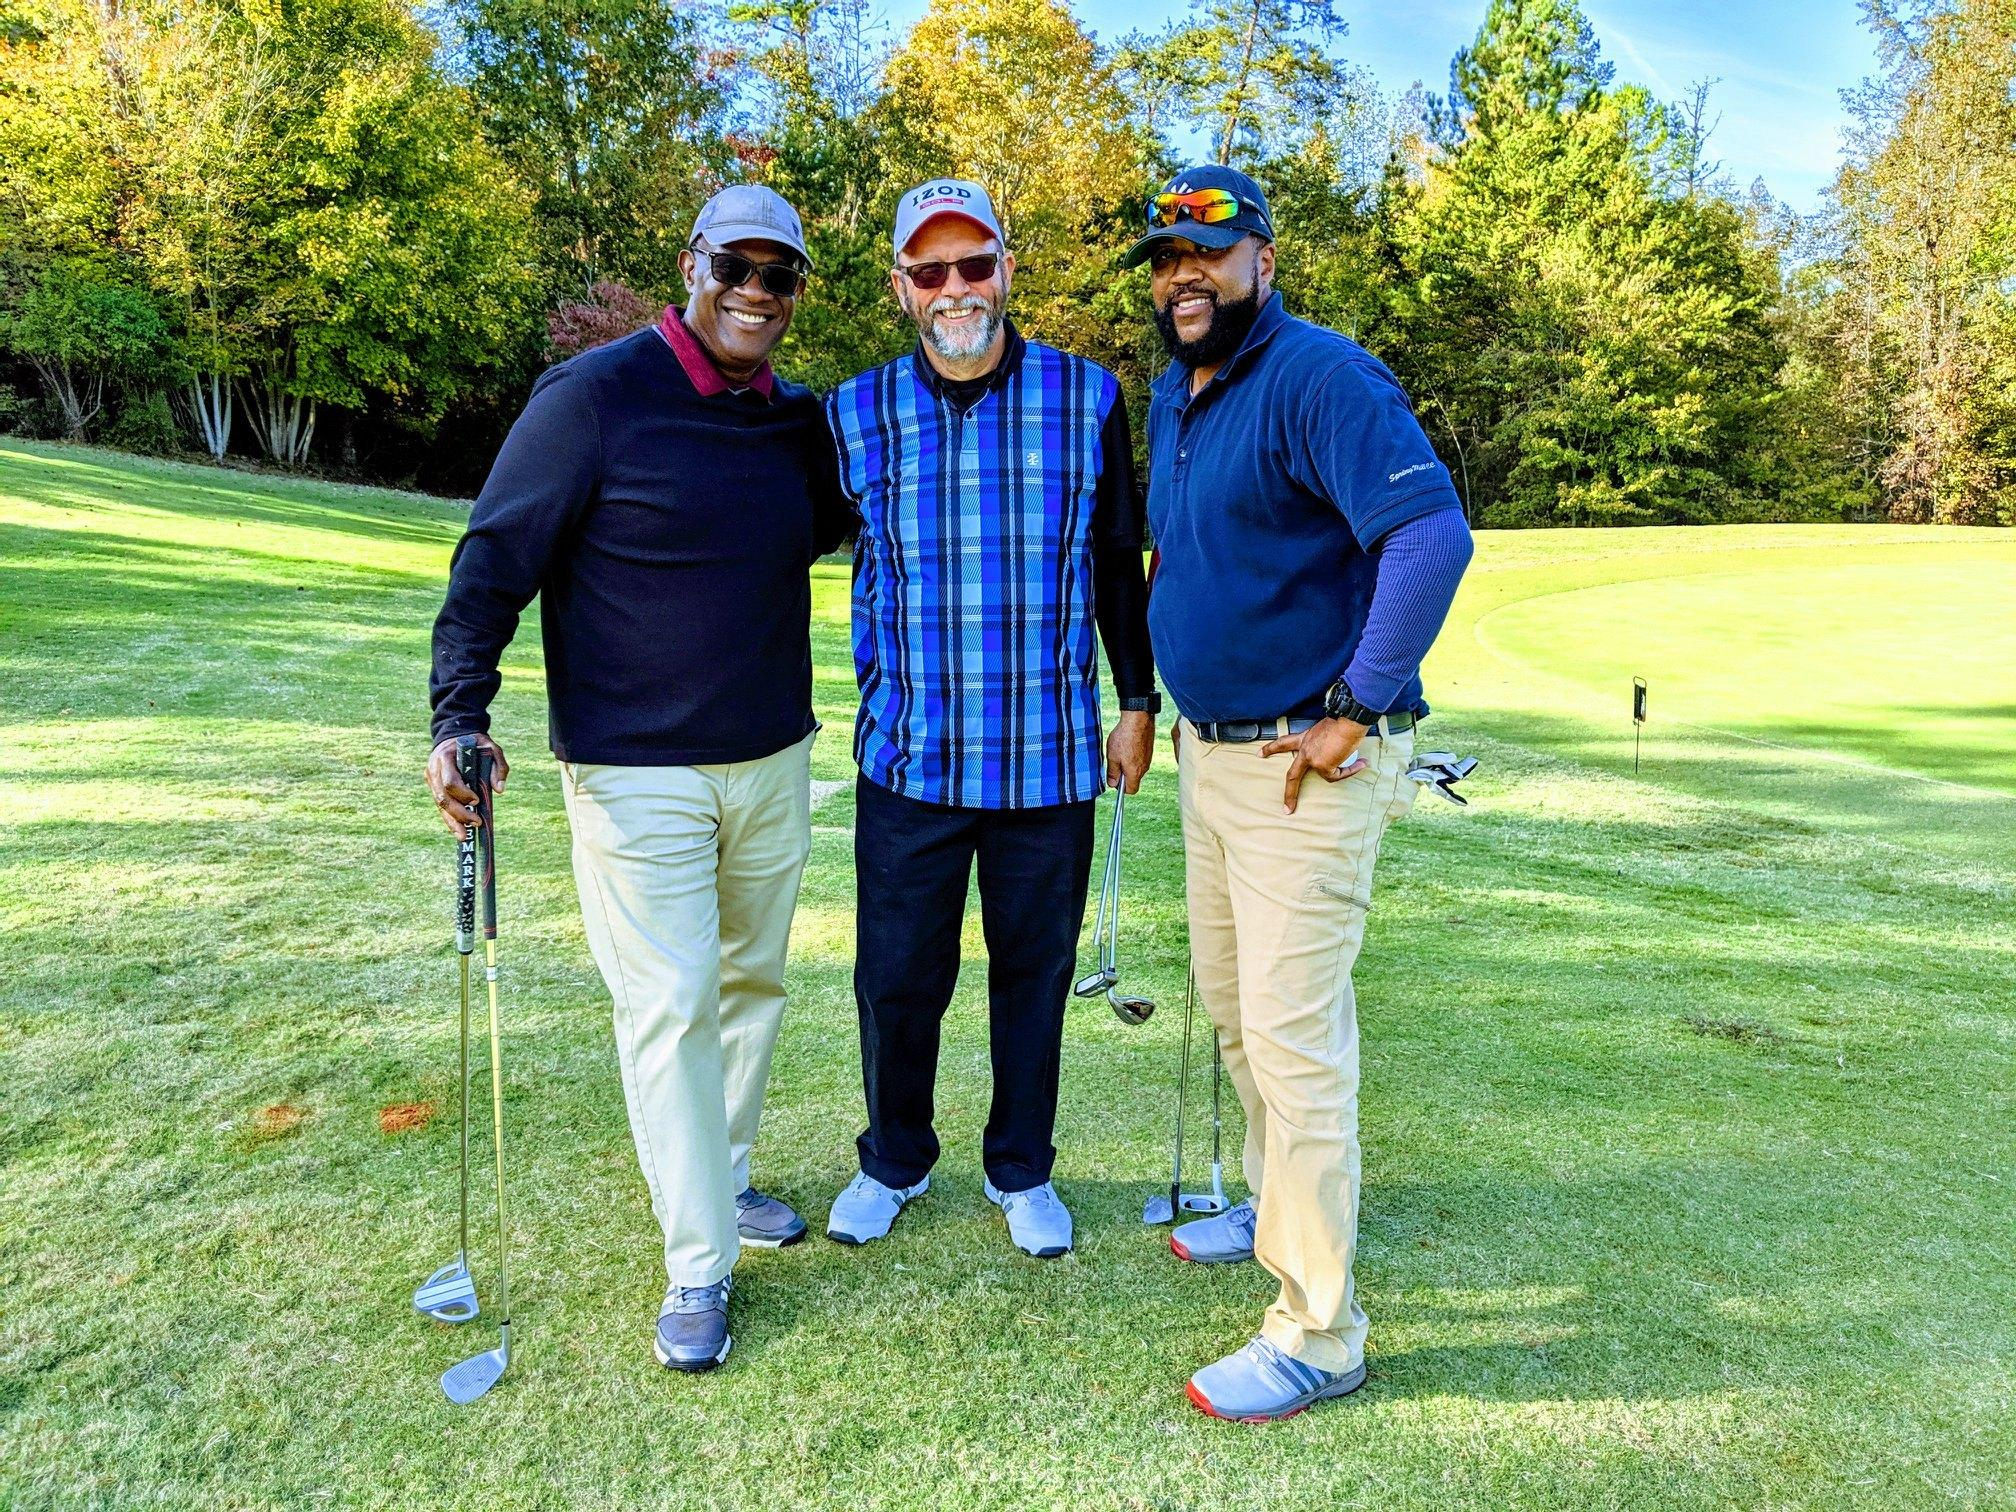 Spring 2020 Golf Tournament with A Place for Heroes